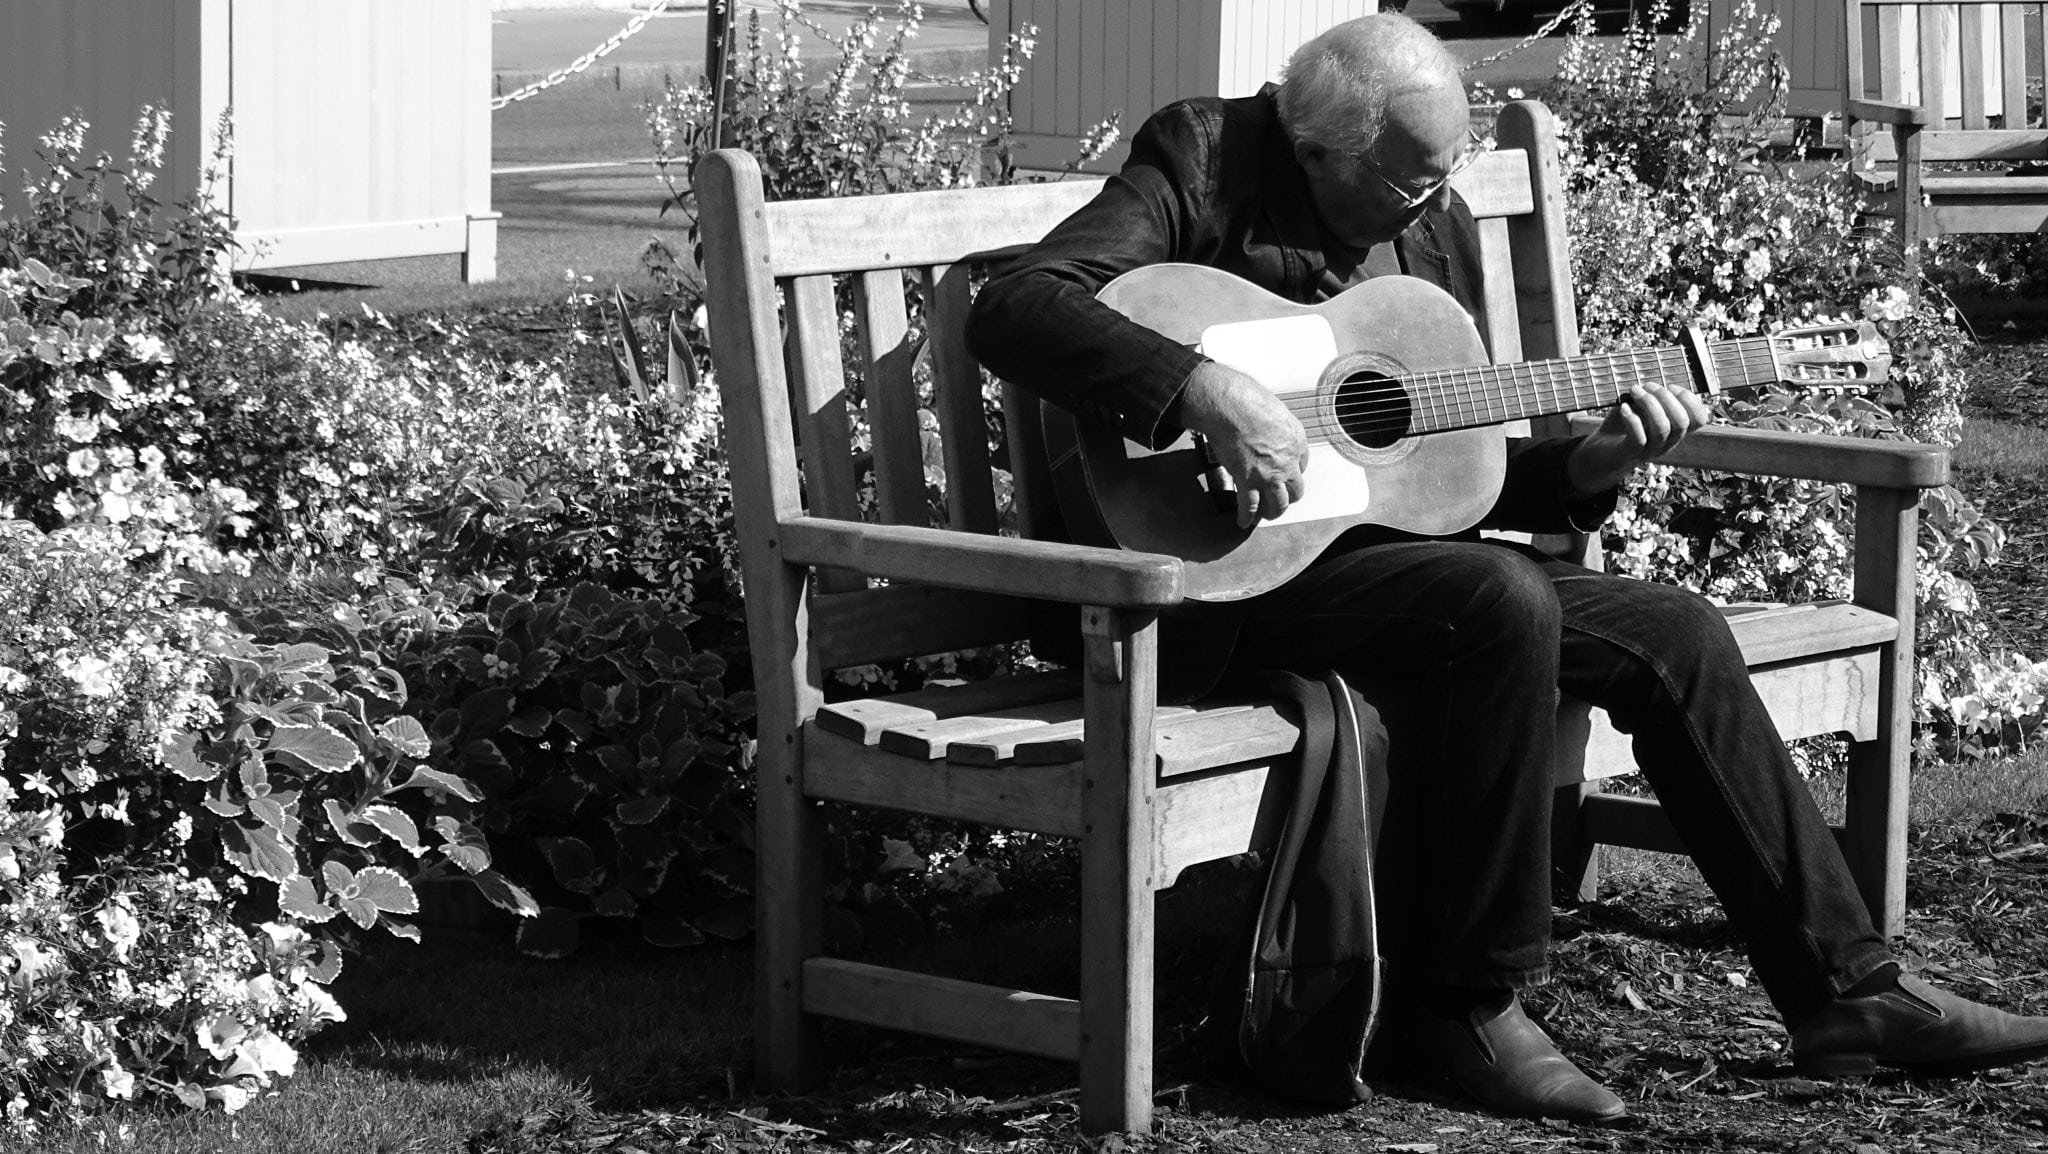 Photo: Older man playing a guitar on a bench